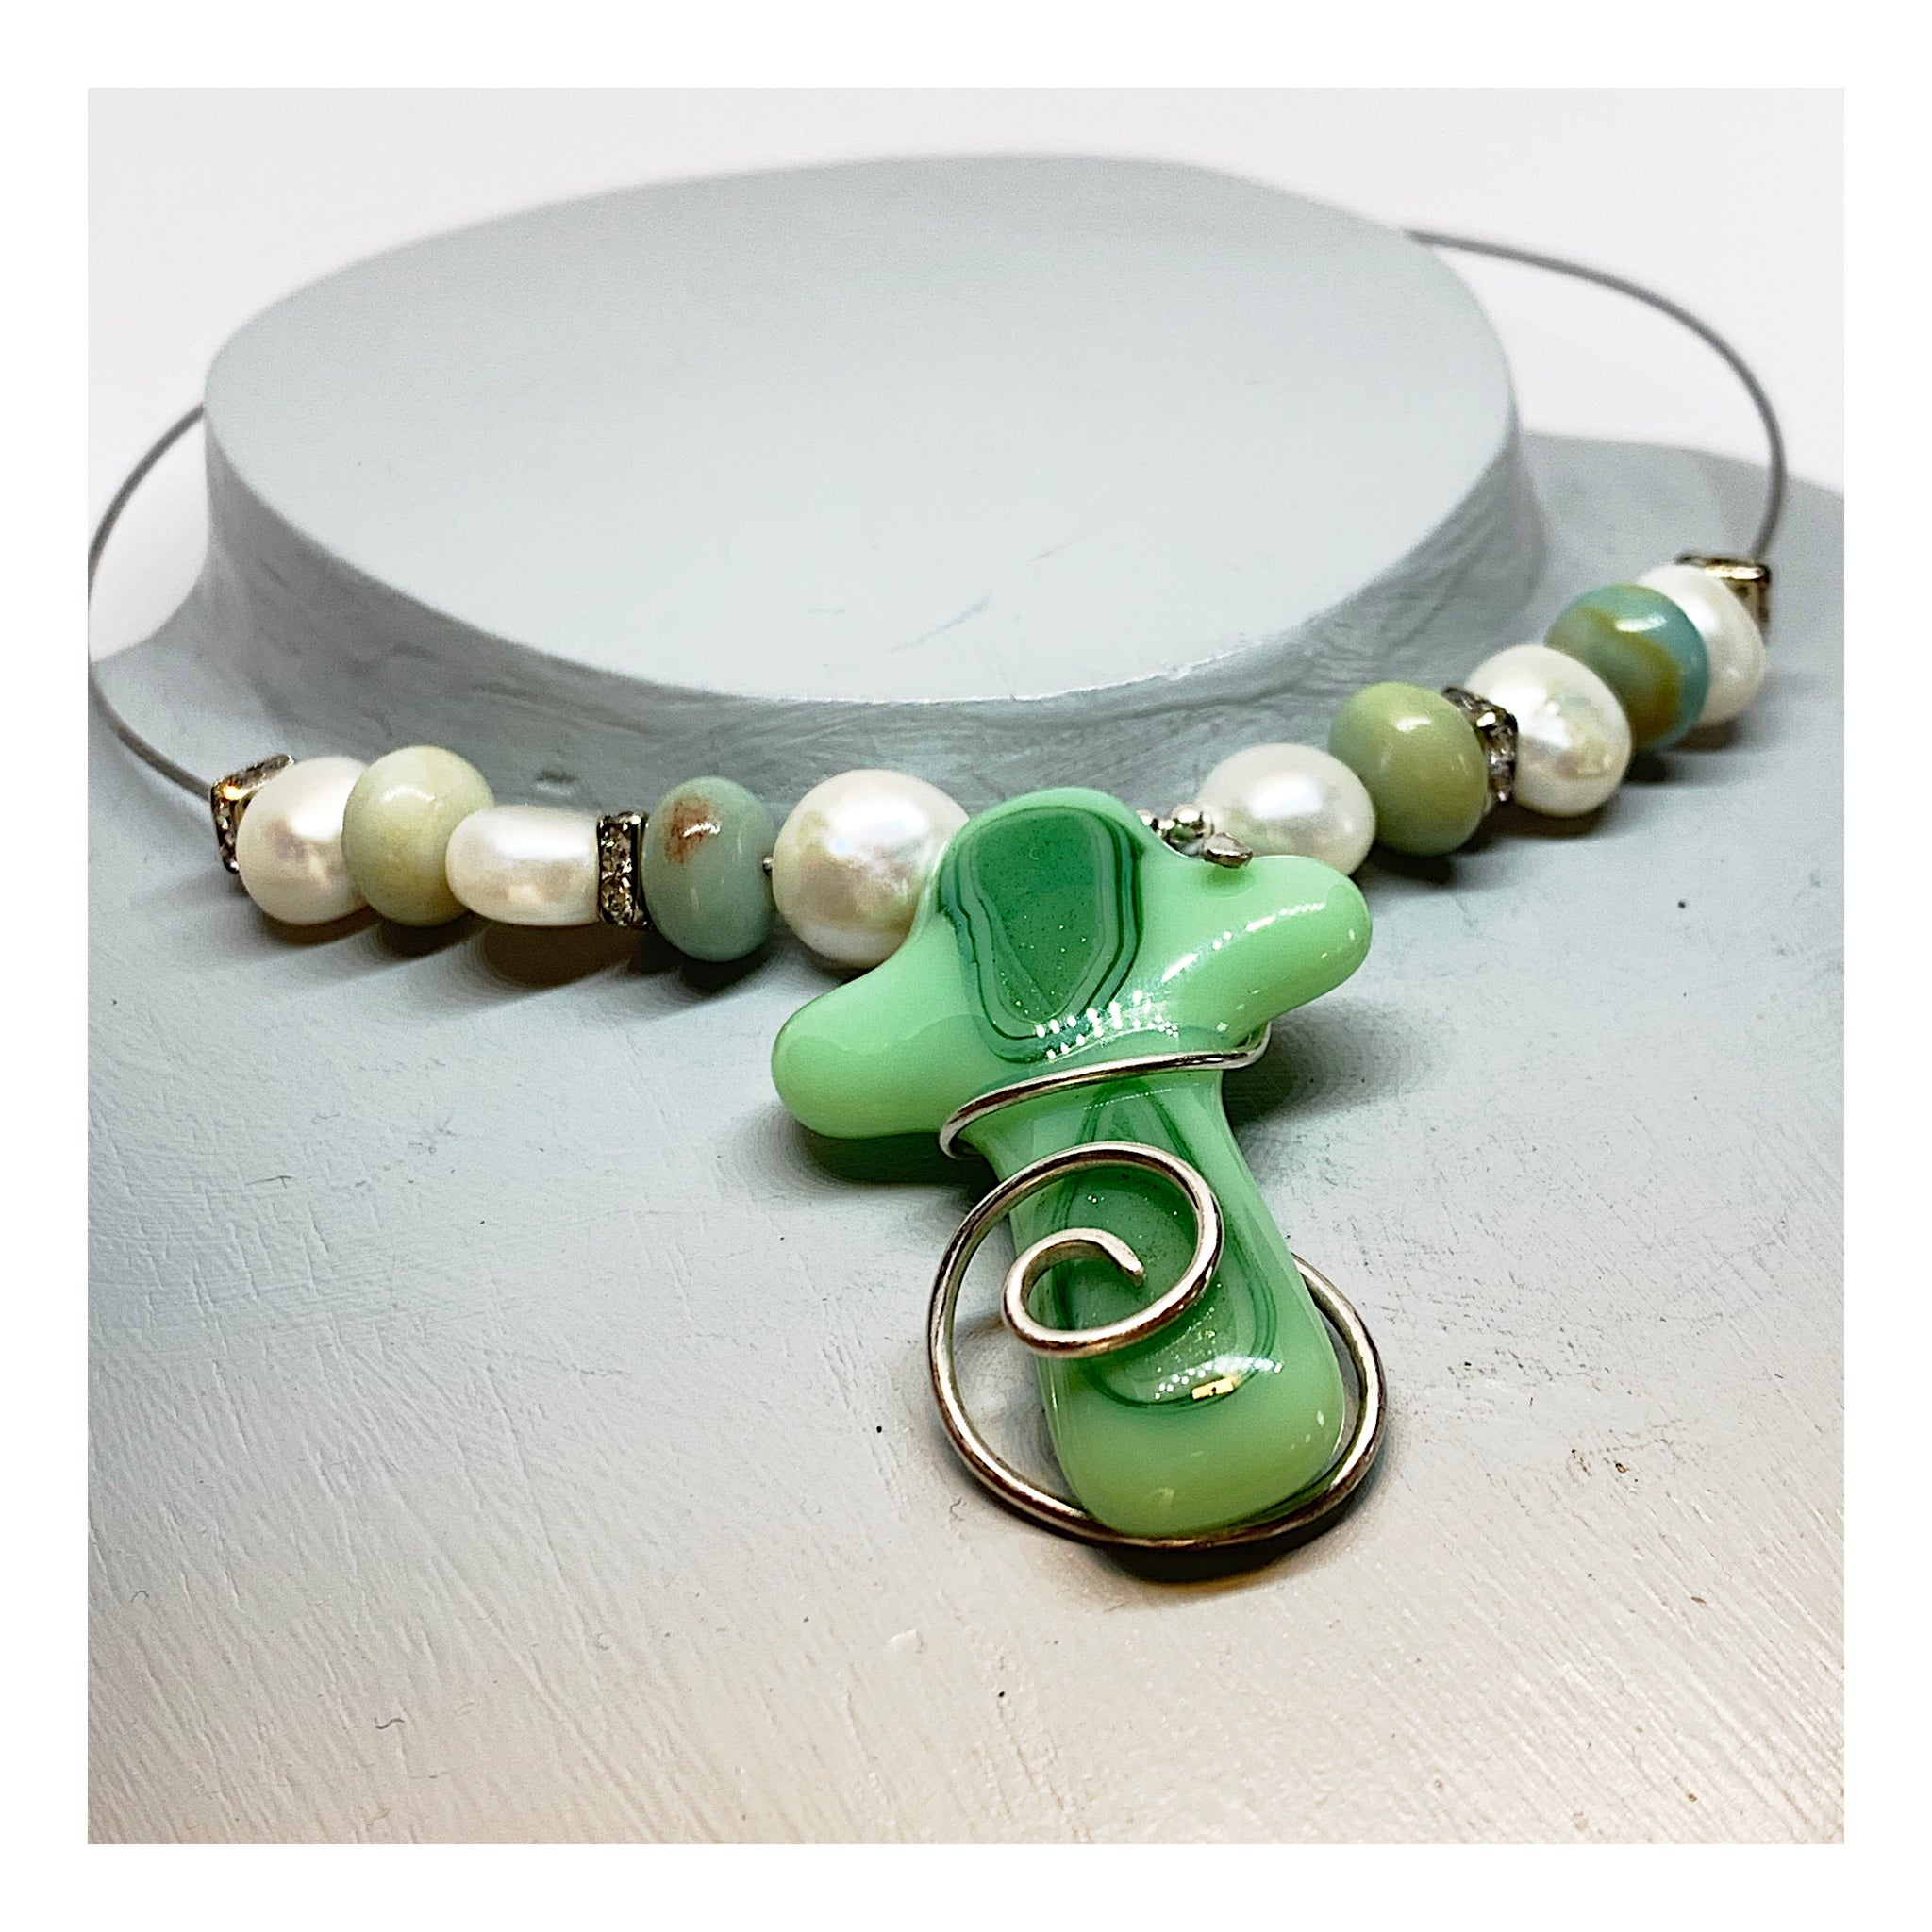 Ceramic Cross Necklace - Pearl and Gemstone Choker - Green Color Tones